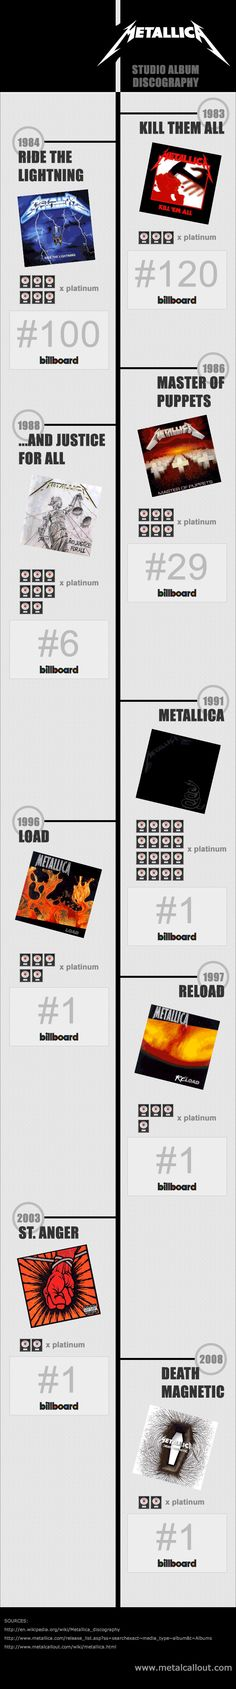 Metallica Studio Album Discography Infographic